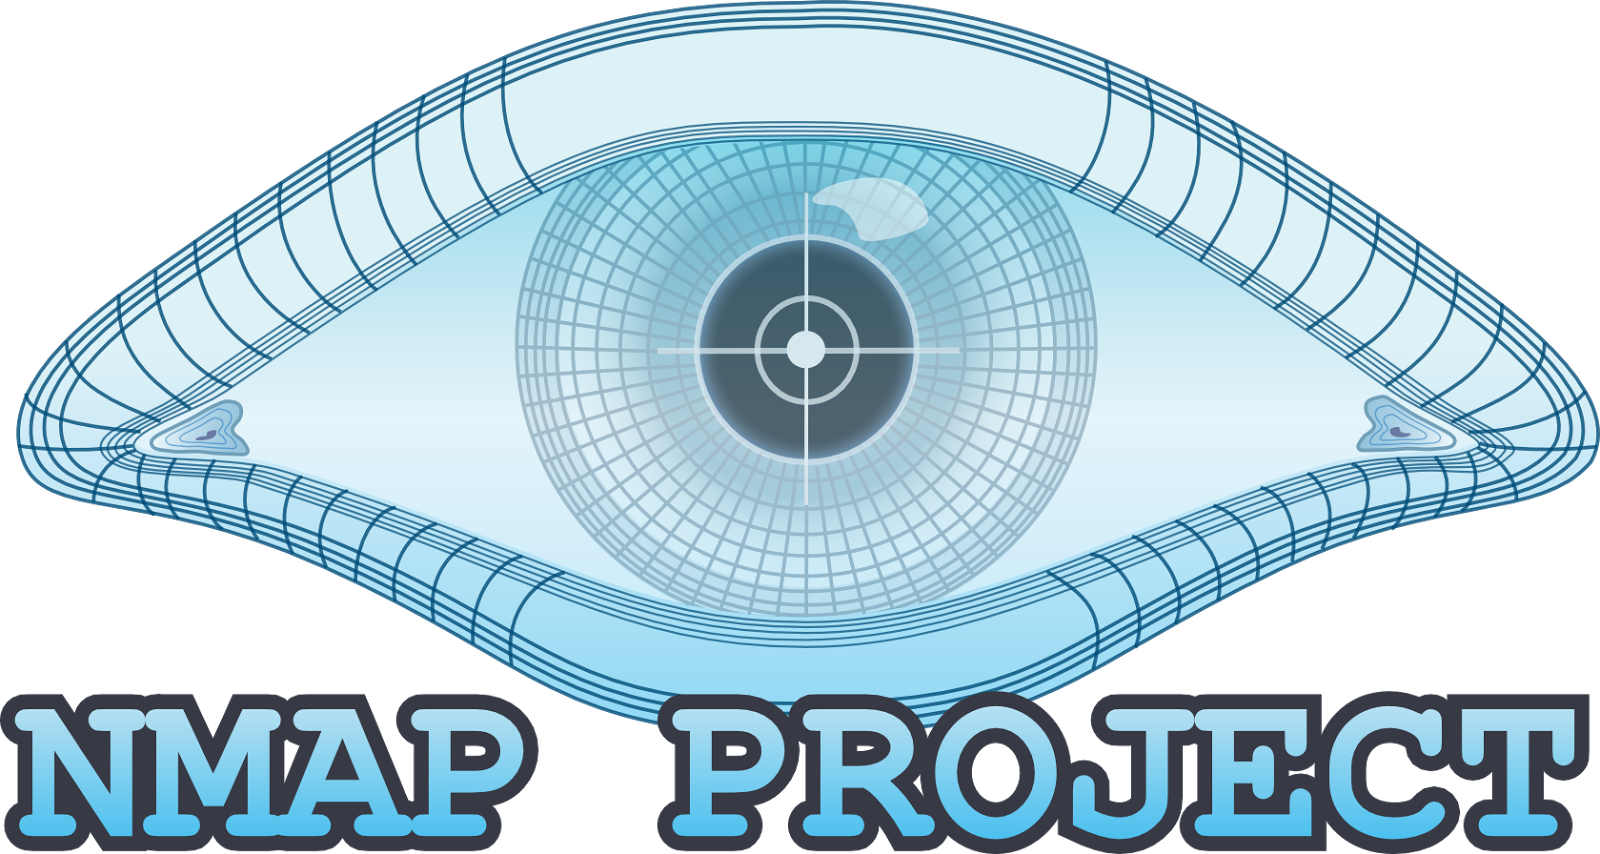 ZeNmap - The classic way of Nmap 1